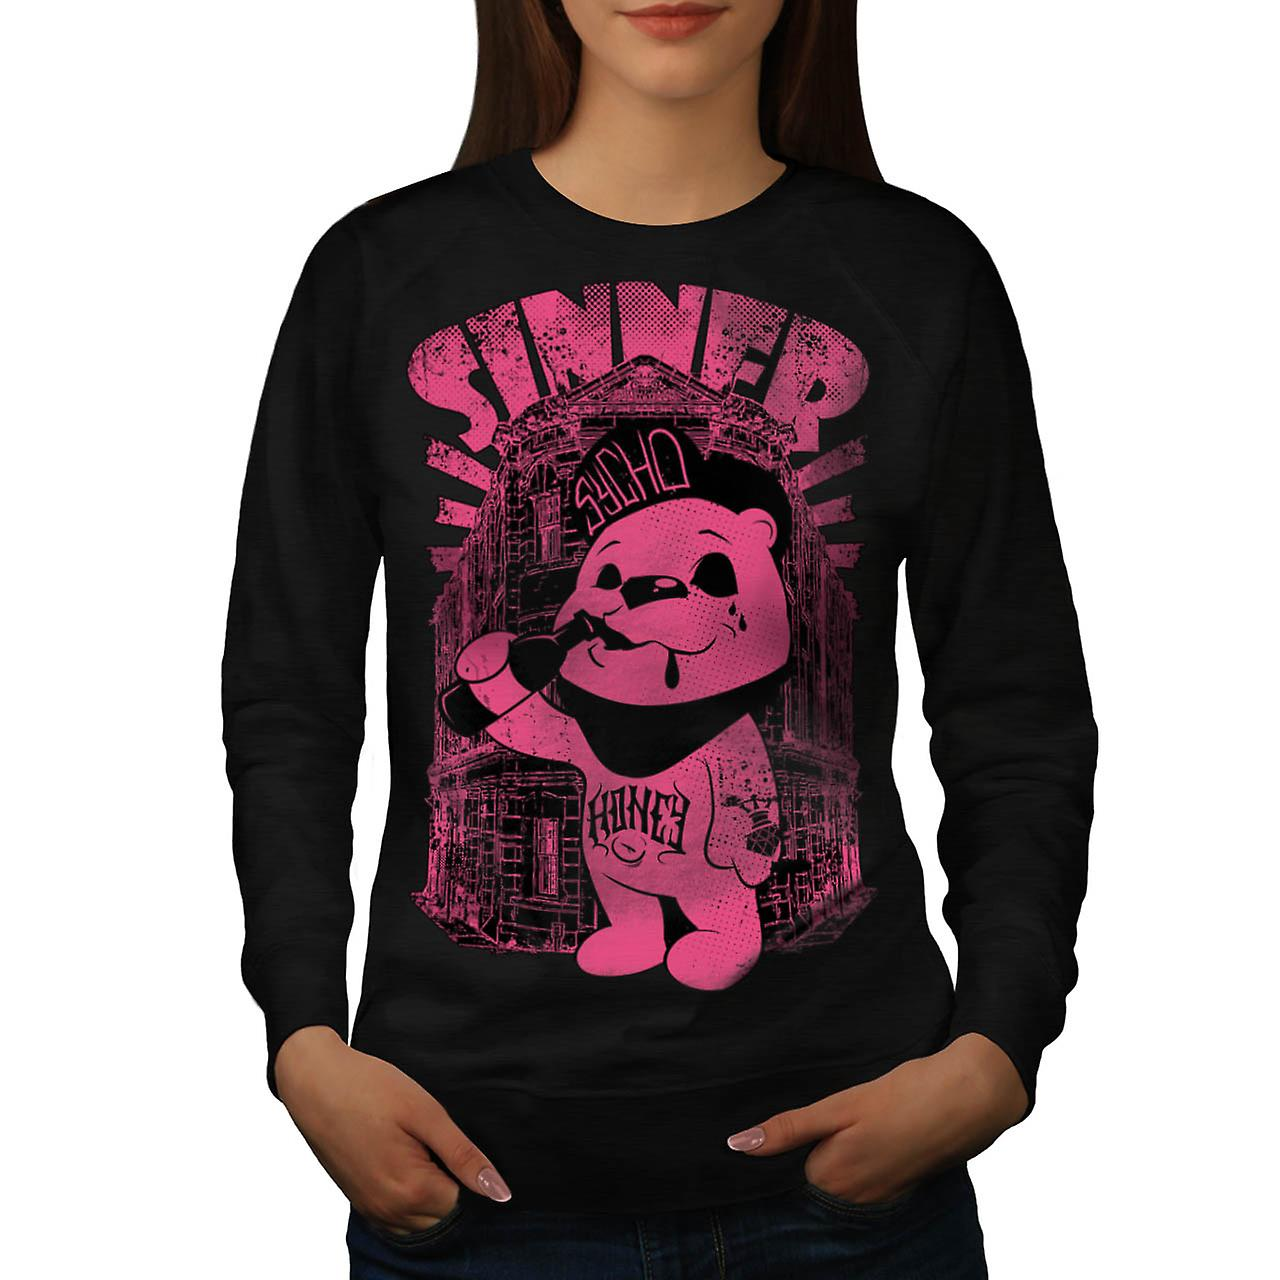 Sinner Teddy Ted Bear Women Black Sweatshirt | Wellcoda